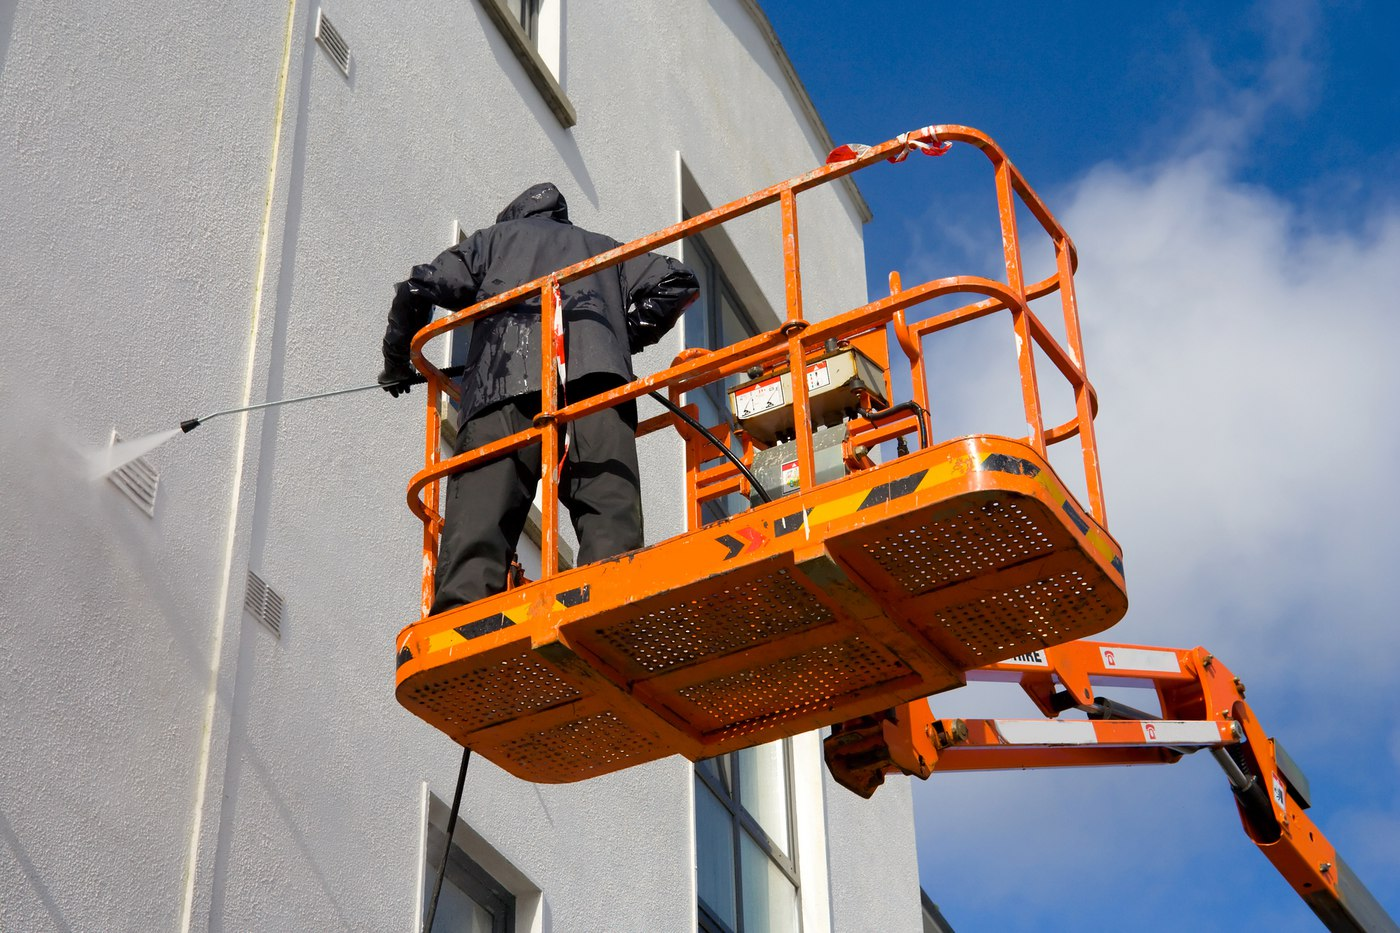 Spring Cleaning: Why You Should Consider Pressure Washing Your Commercial Building